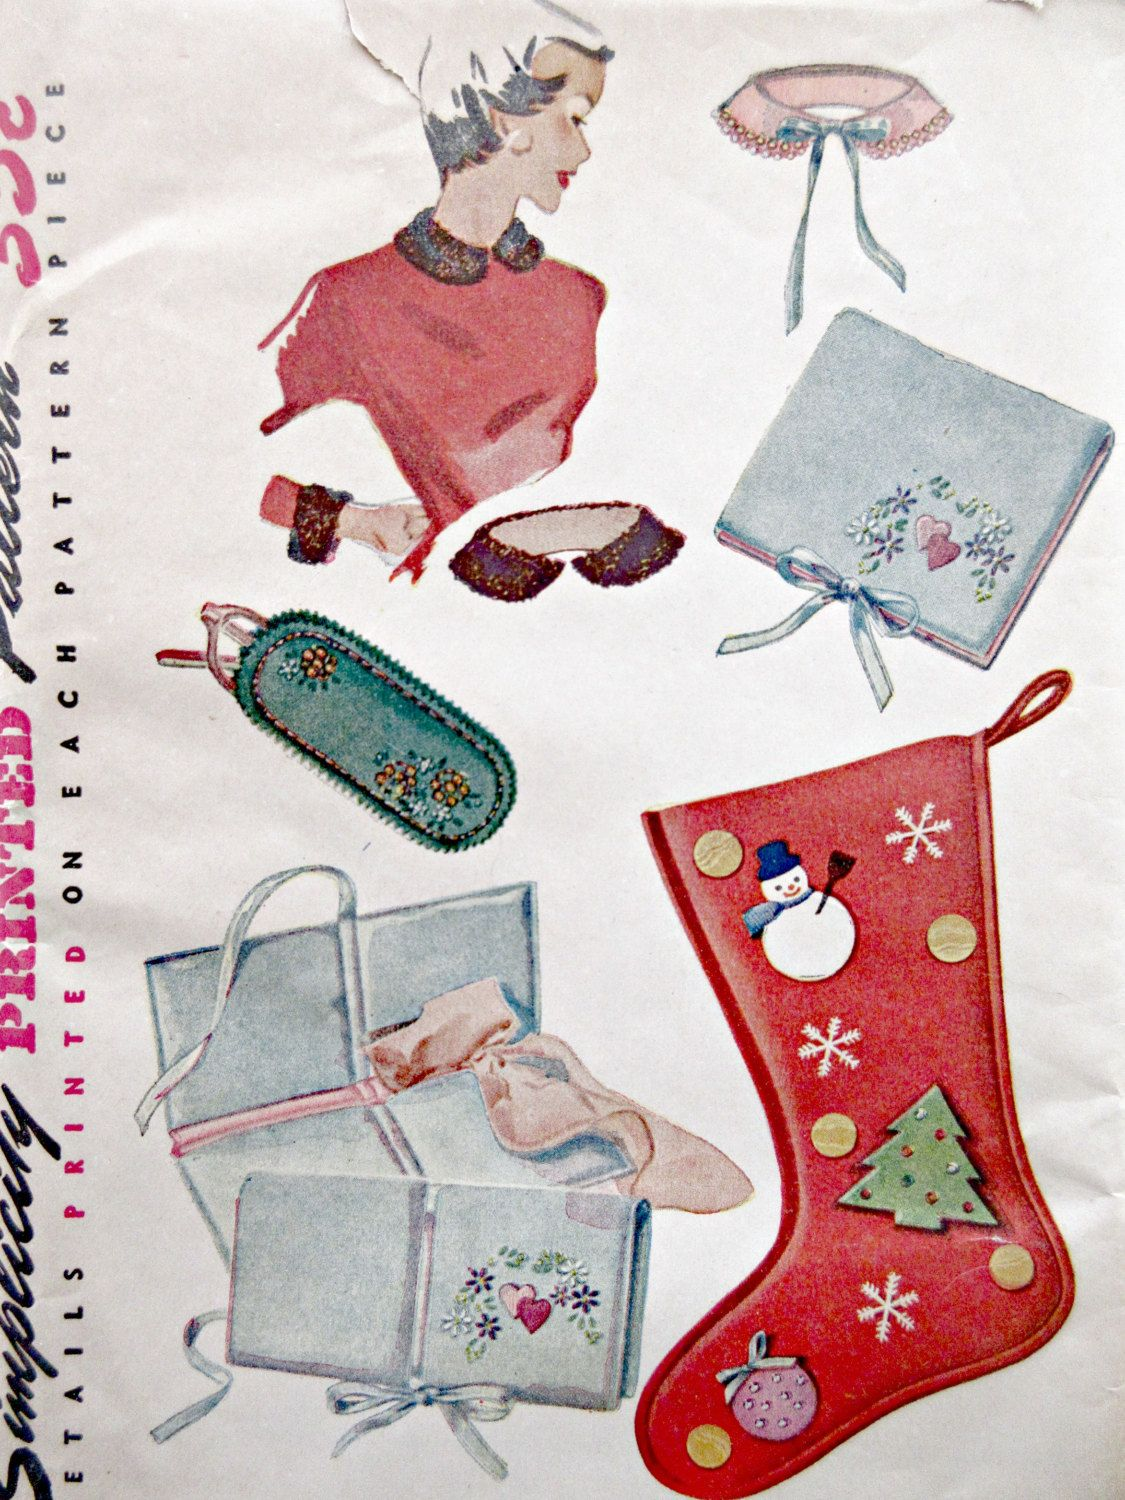 Vintage Simplicity 4519 Sewing Pattern, Collars and Cuffs, Christmas ...